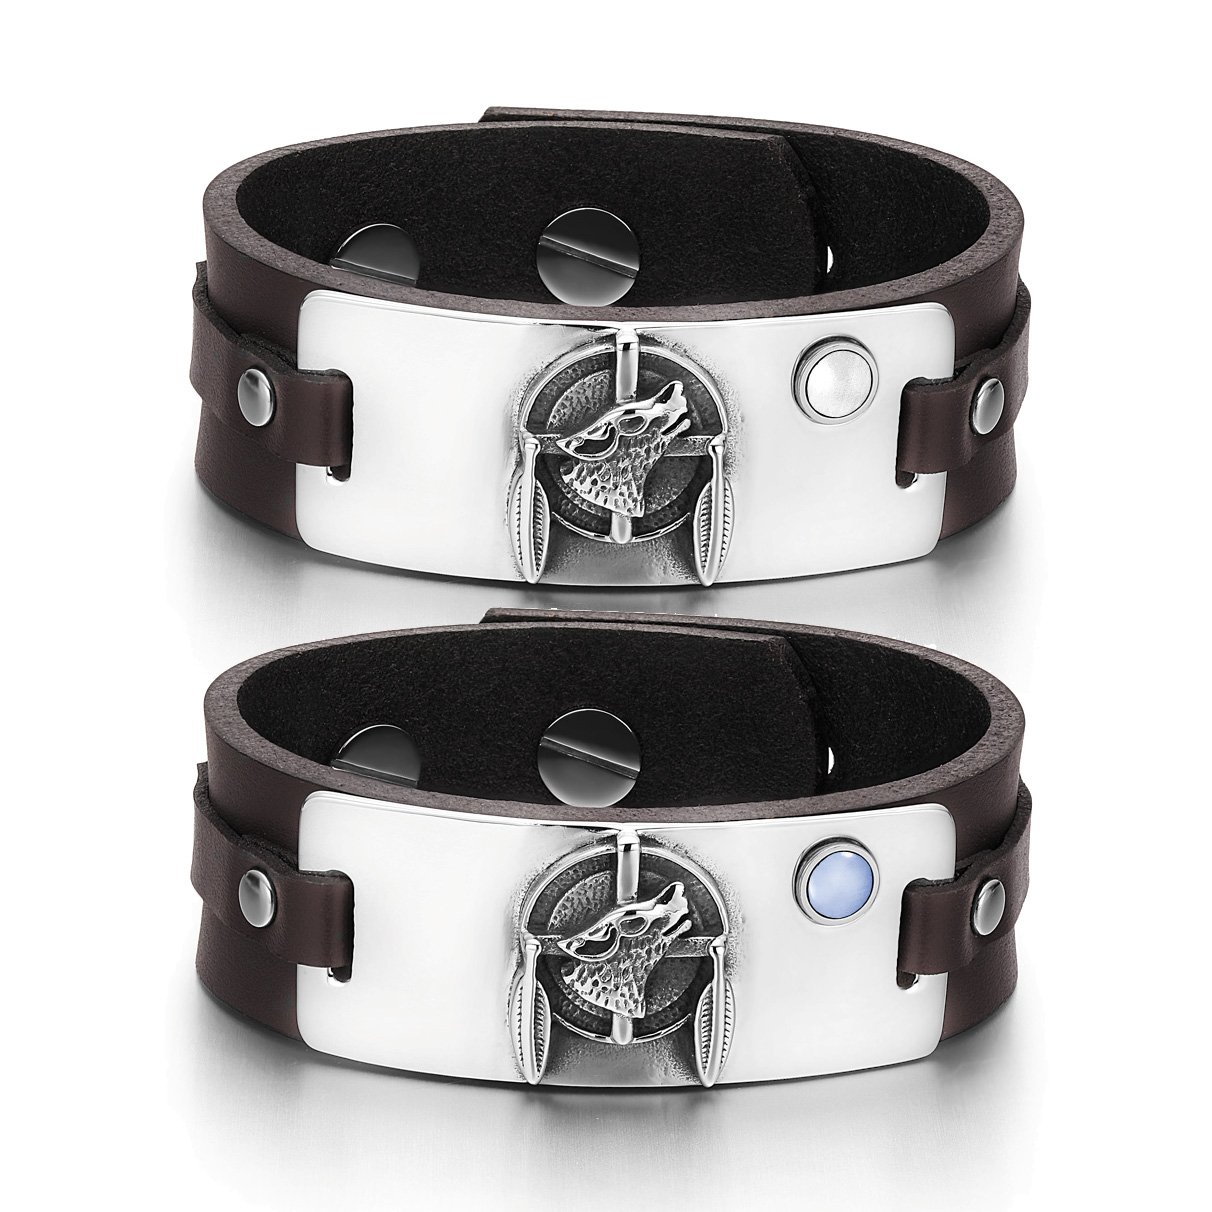 Howling Wolf Dreamcatcher Amulets Couples White Blue Simulated Cats Eye Brown Leather Bracelets